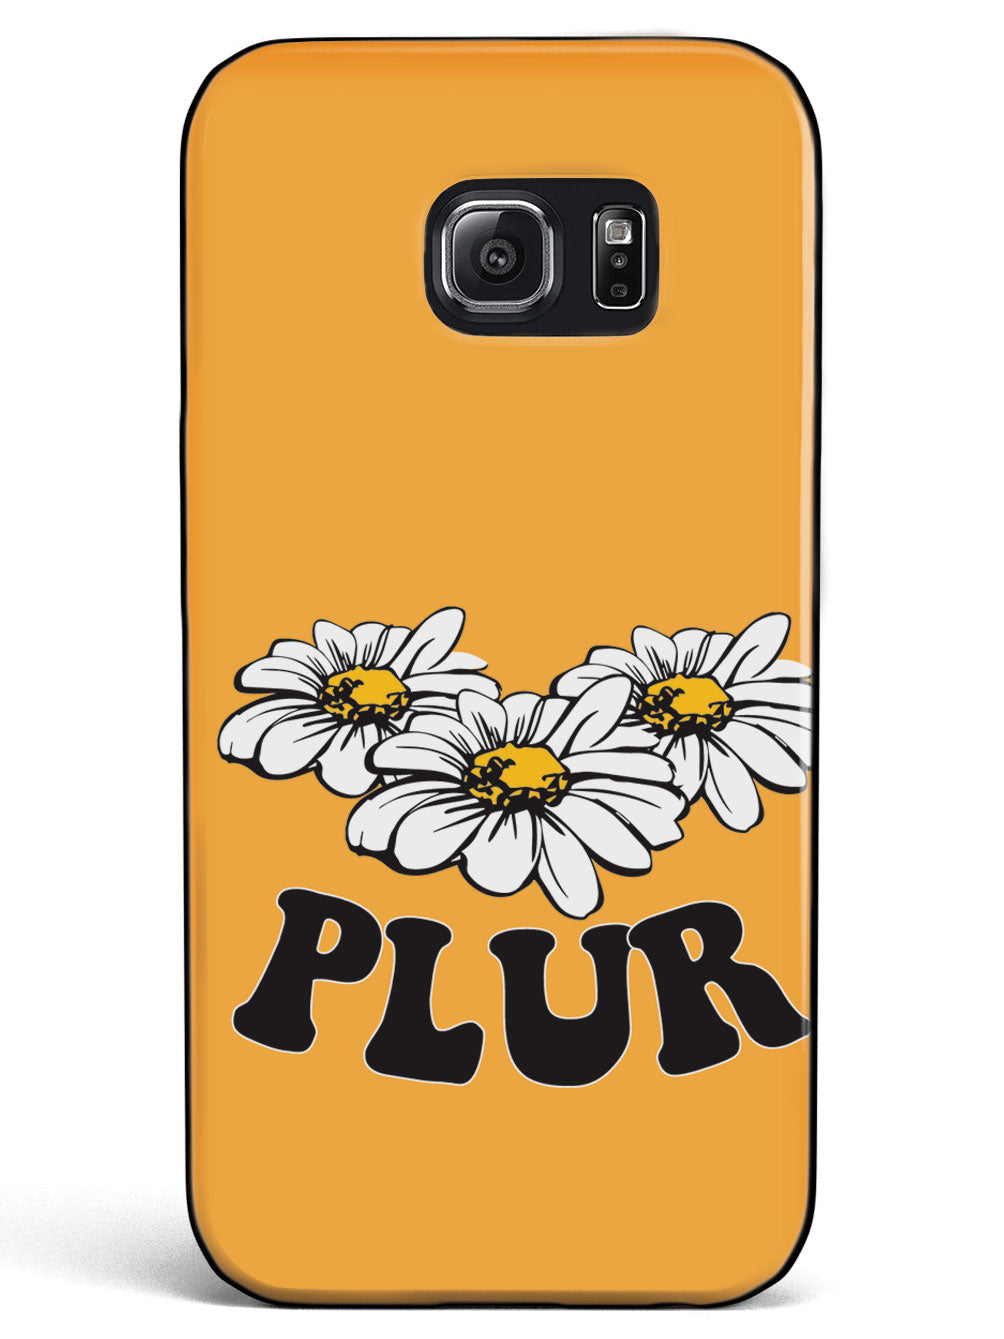 Orange PLUR - Black Case